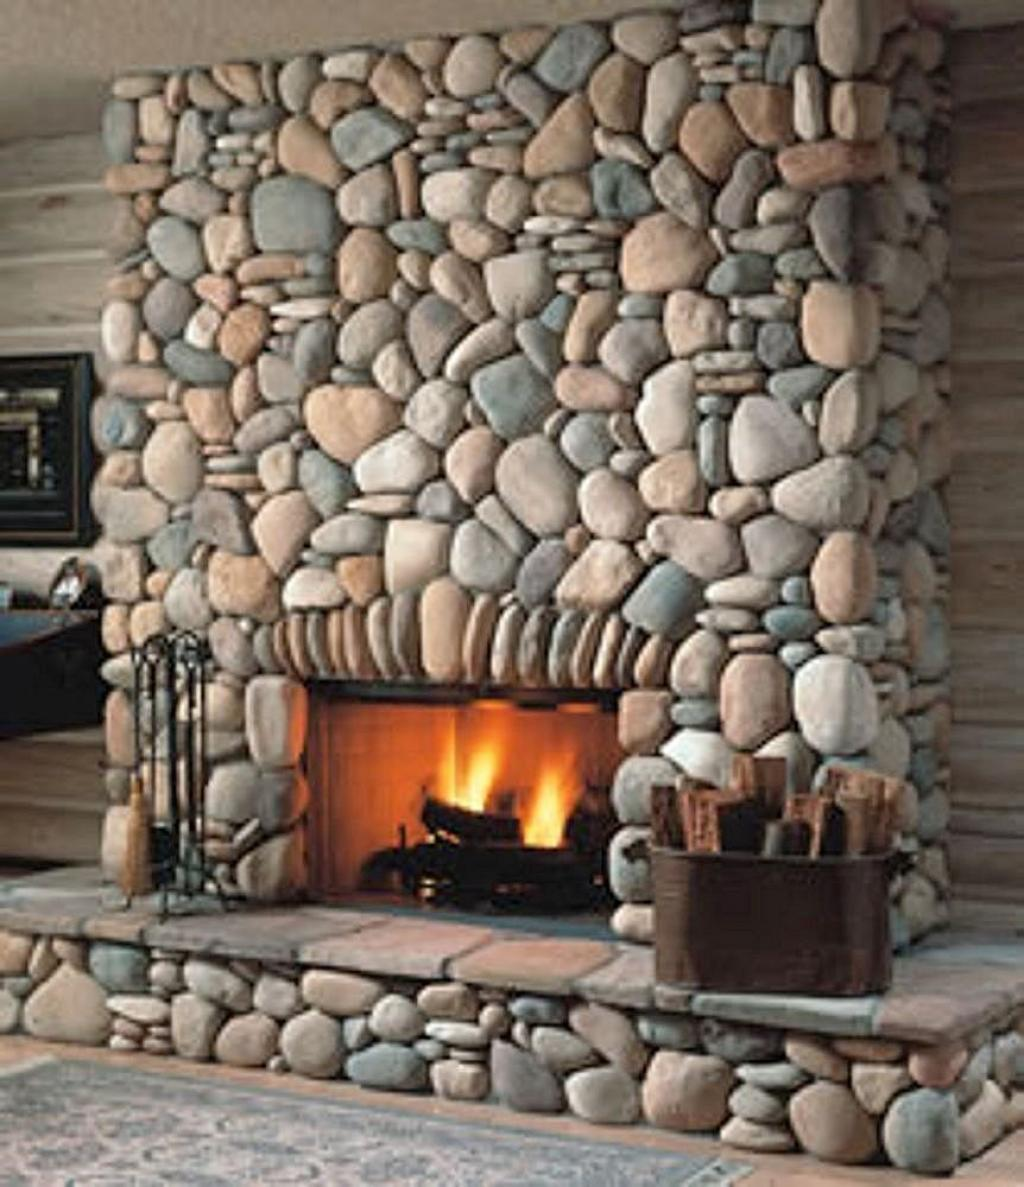 Amiable Stone Veneer Decorative Fireplace Design In Modern